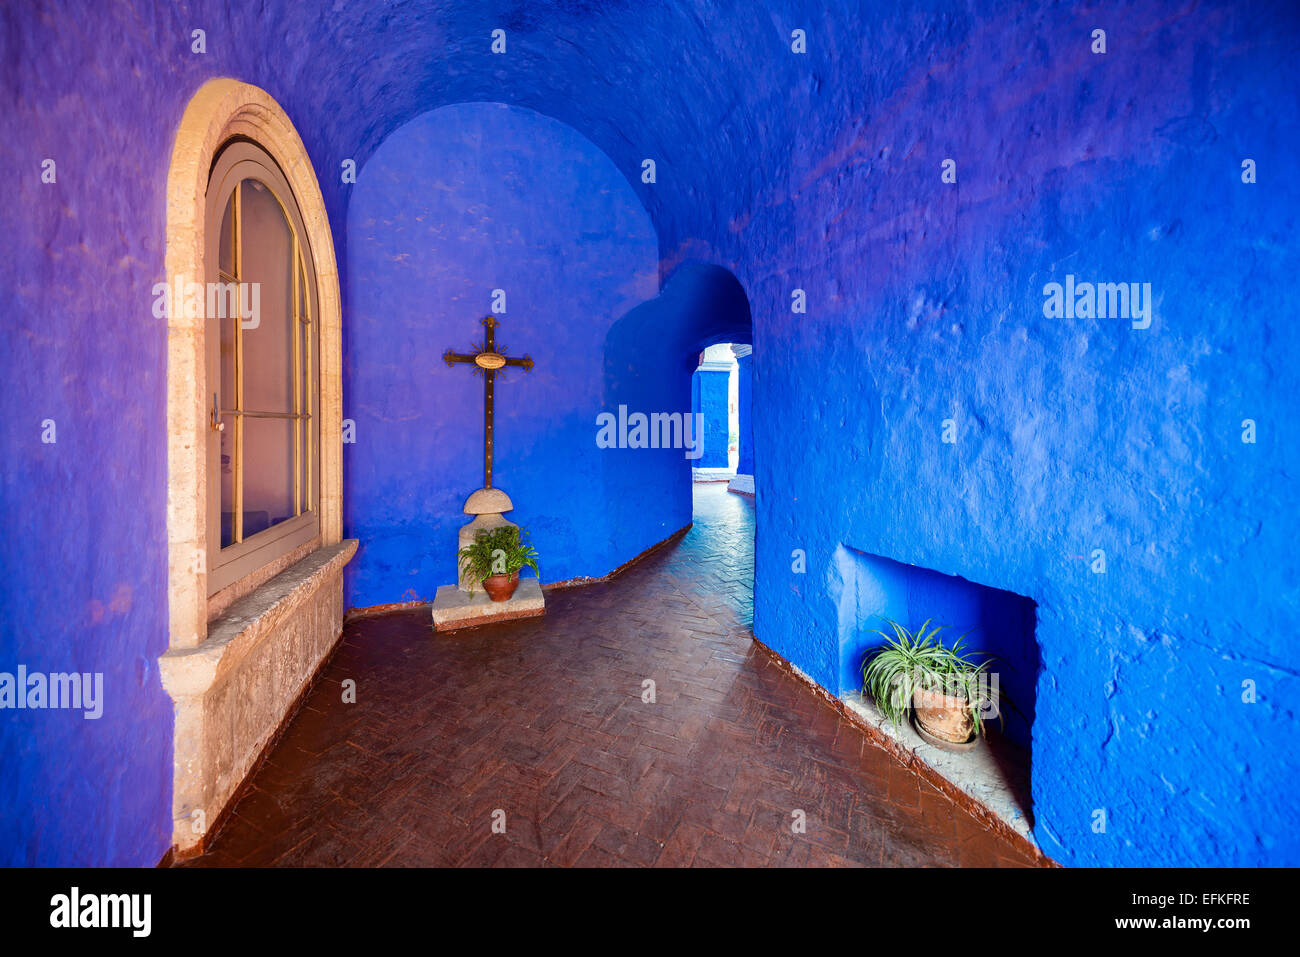 Blue walls of Santa Catalina Monastery in Arequipa, Peru - Stock Image